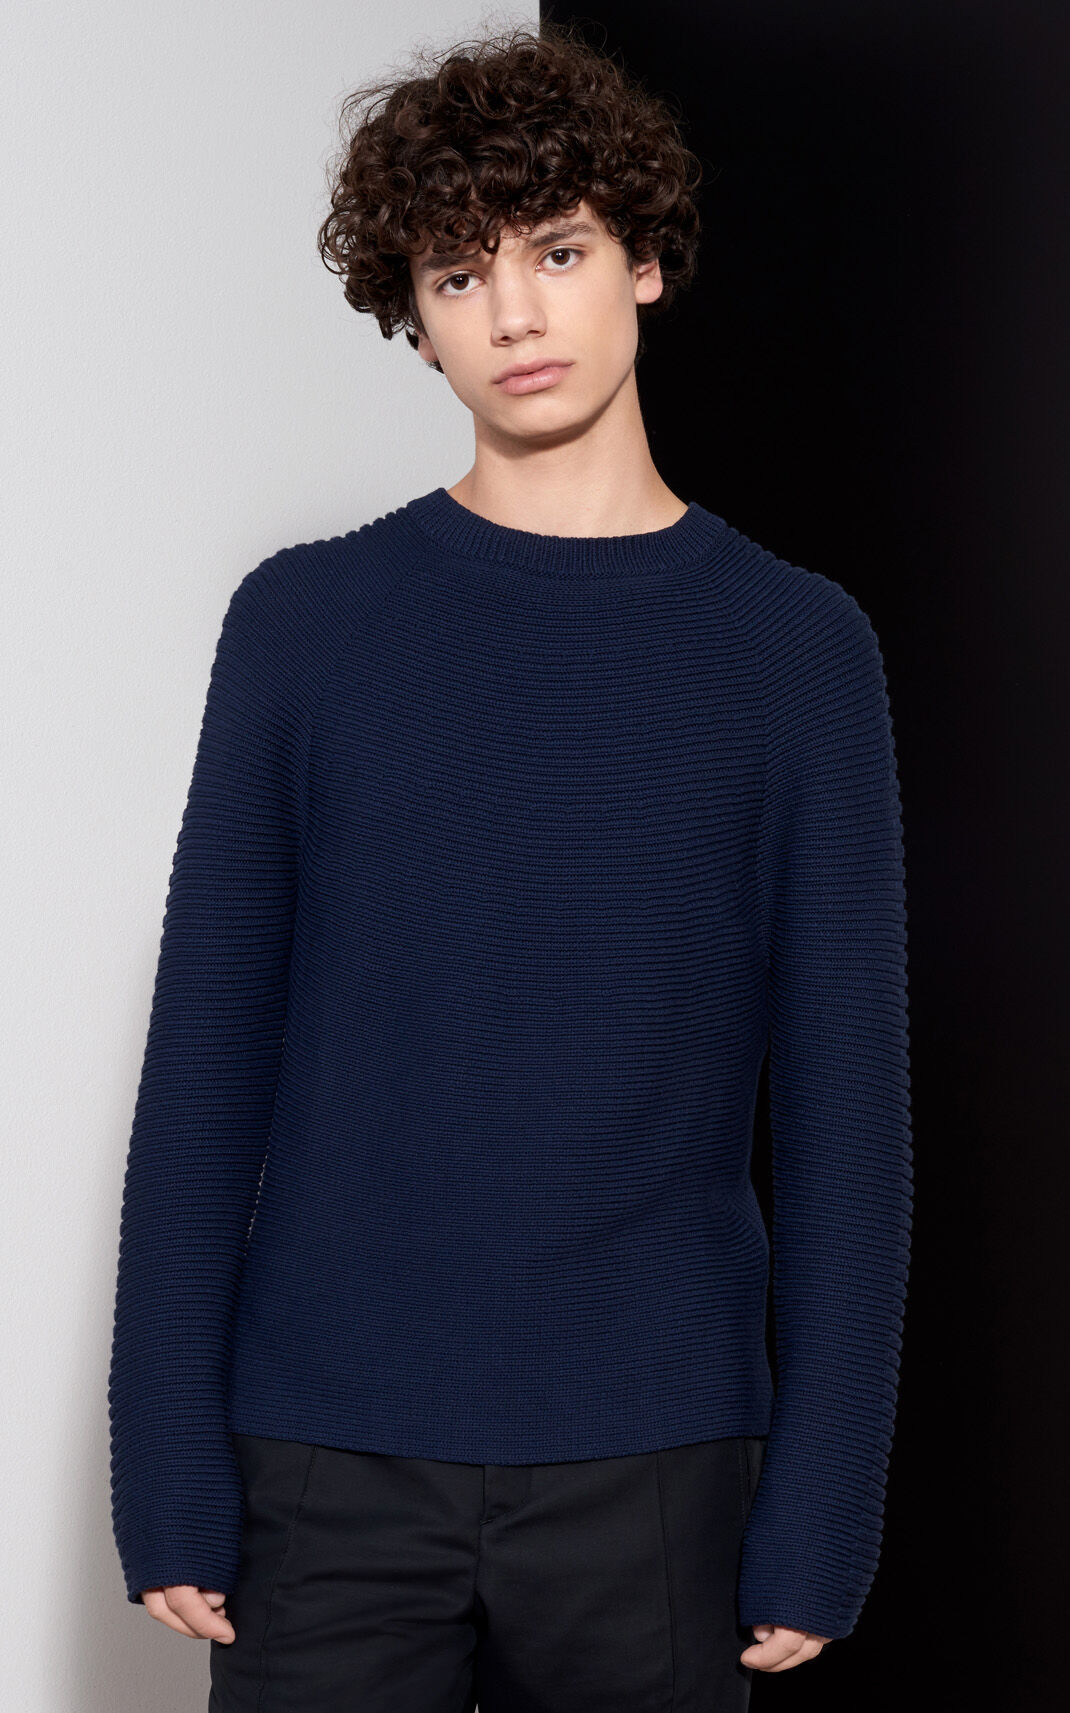 Horizontal Ribbed sweater for Kenzo | Kenzo.com